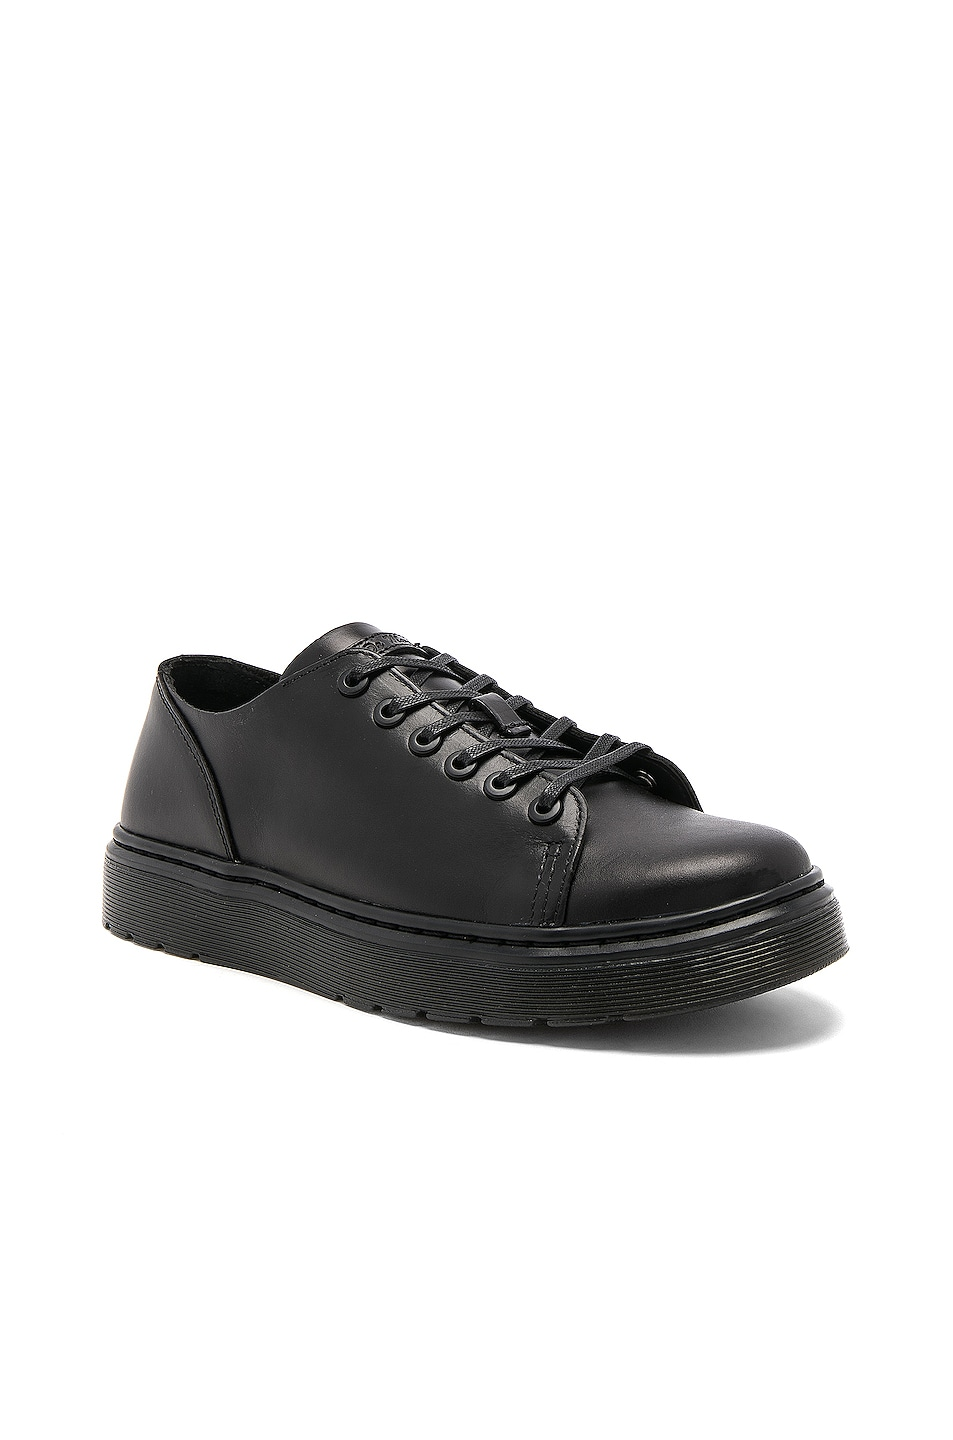 Image 2 of Dr. Martens Dante 6 Eye Leather Shoes in Black